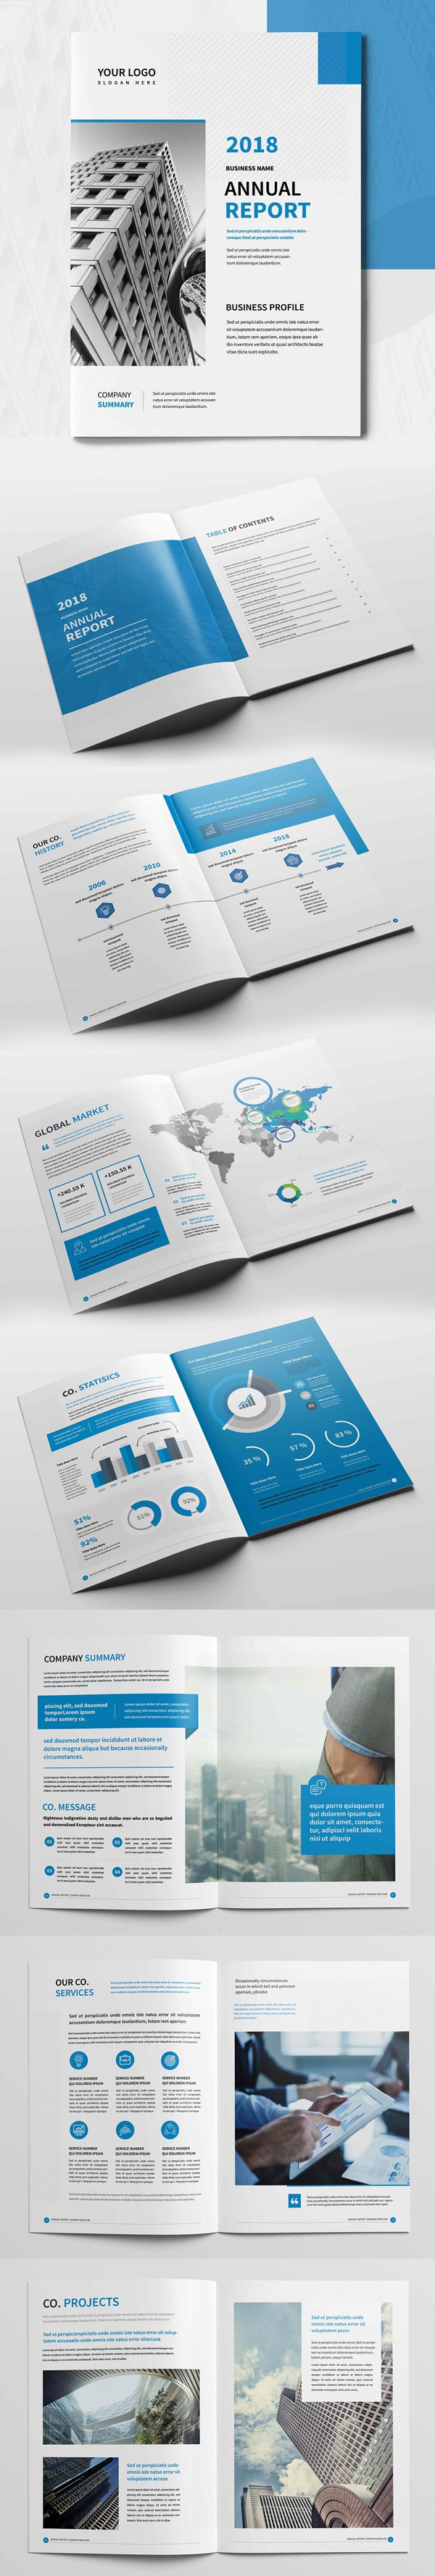 Annual Report Brochure Design Template